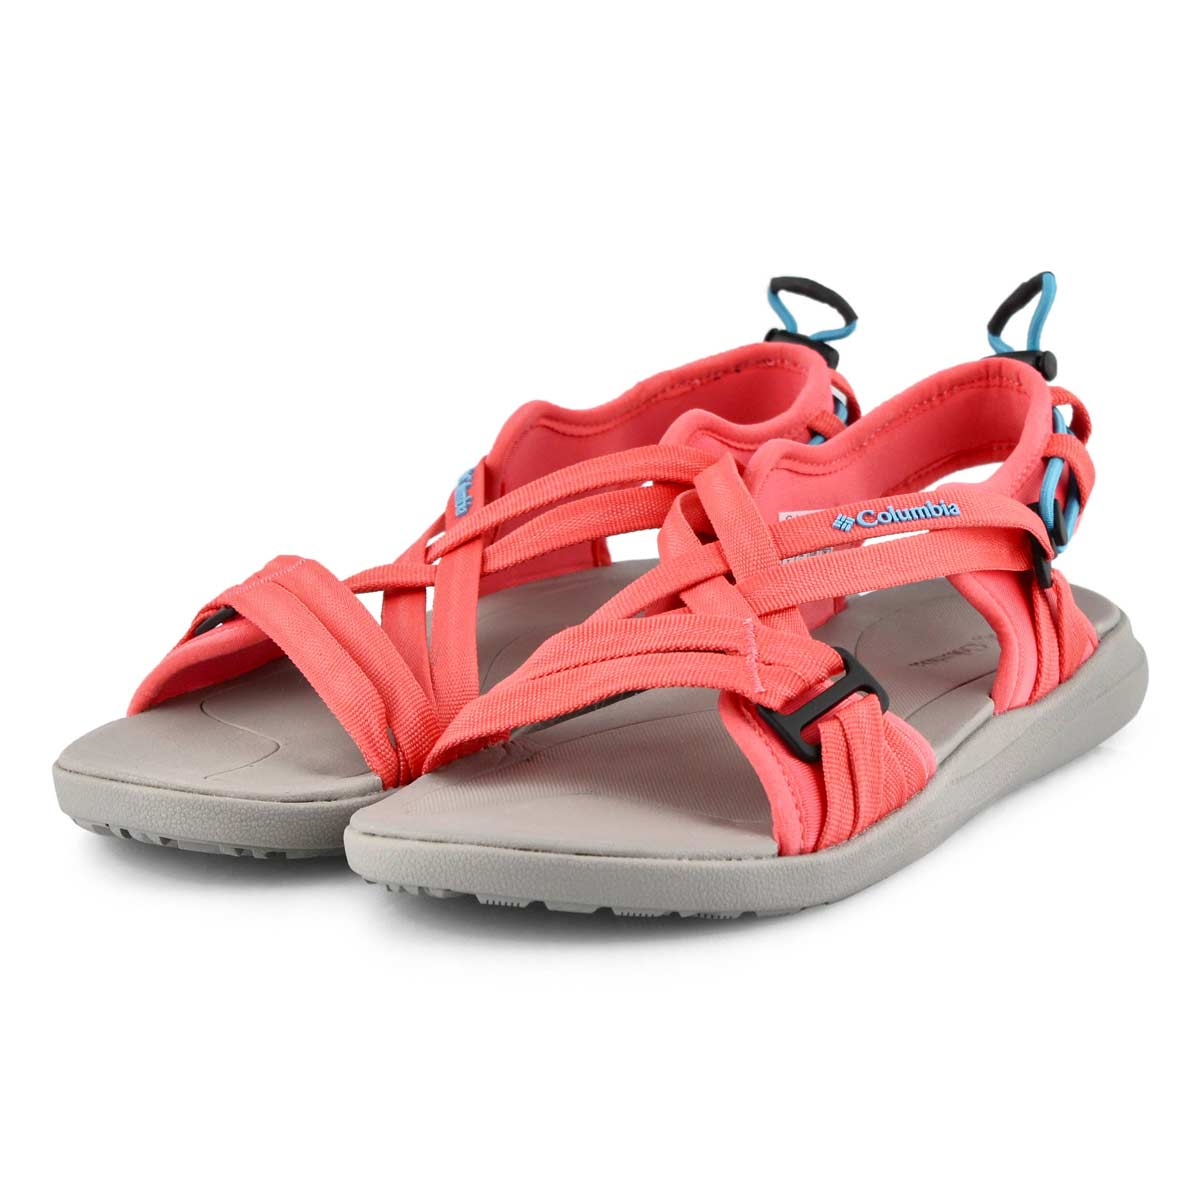 Lds Columbia Sandal juicy sport sandal